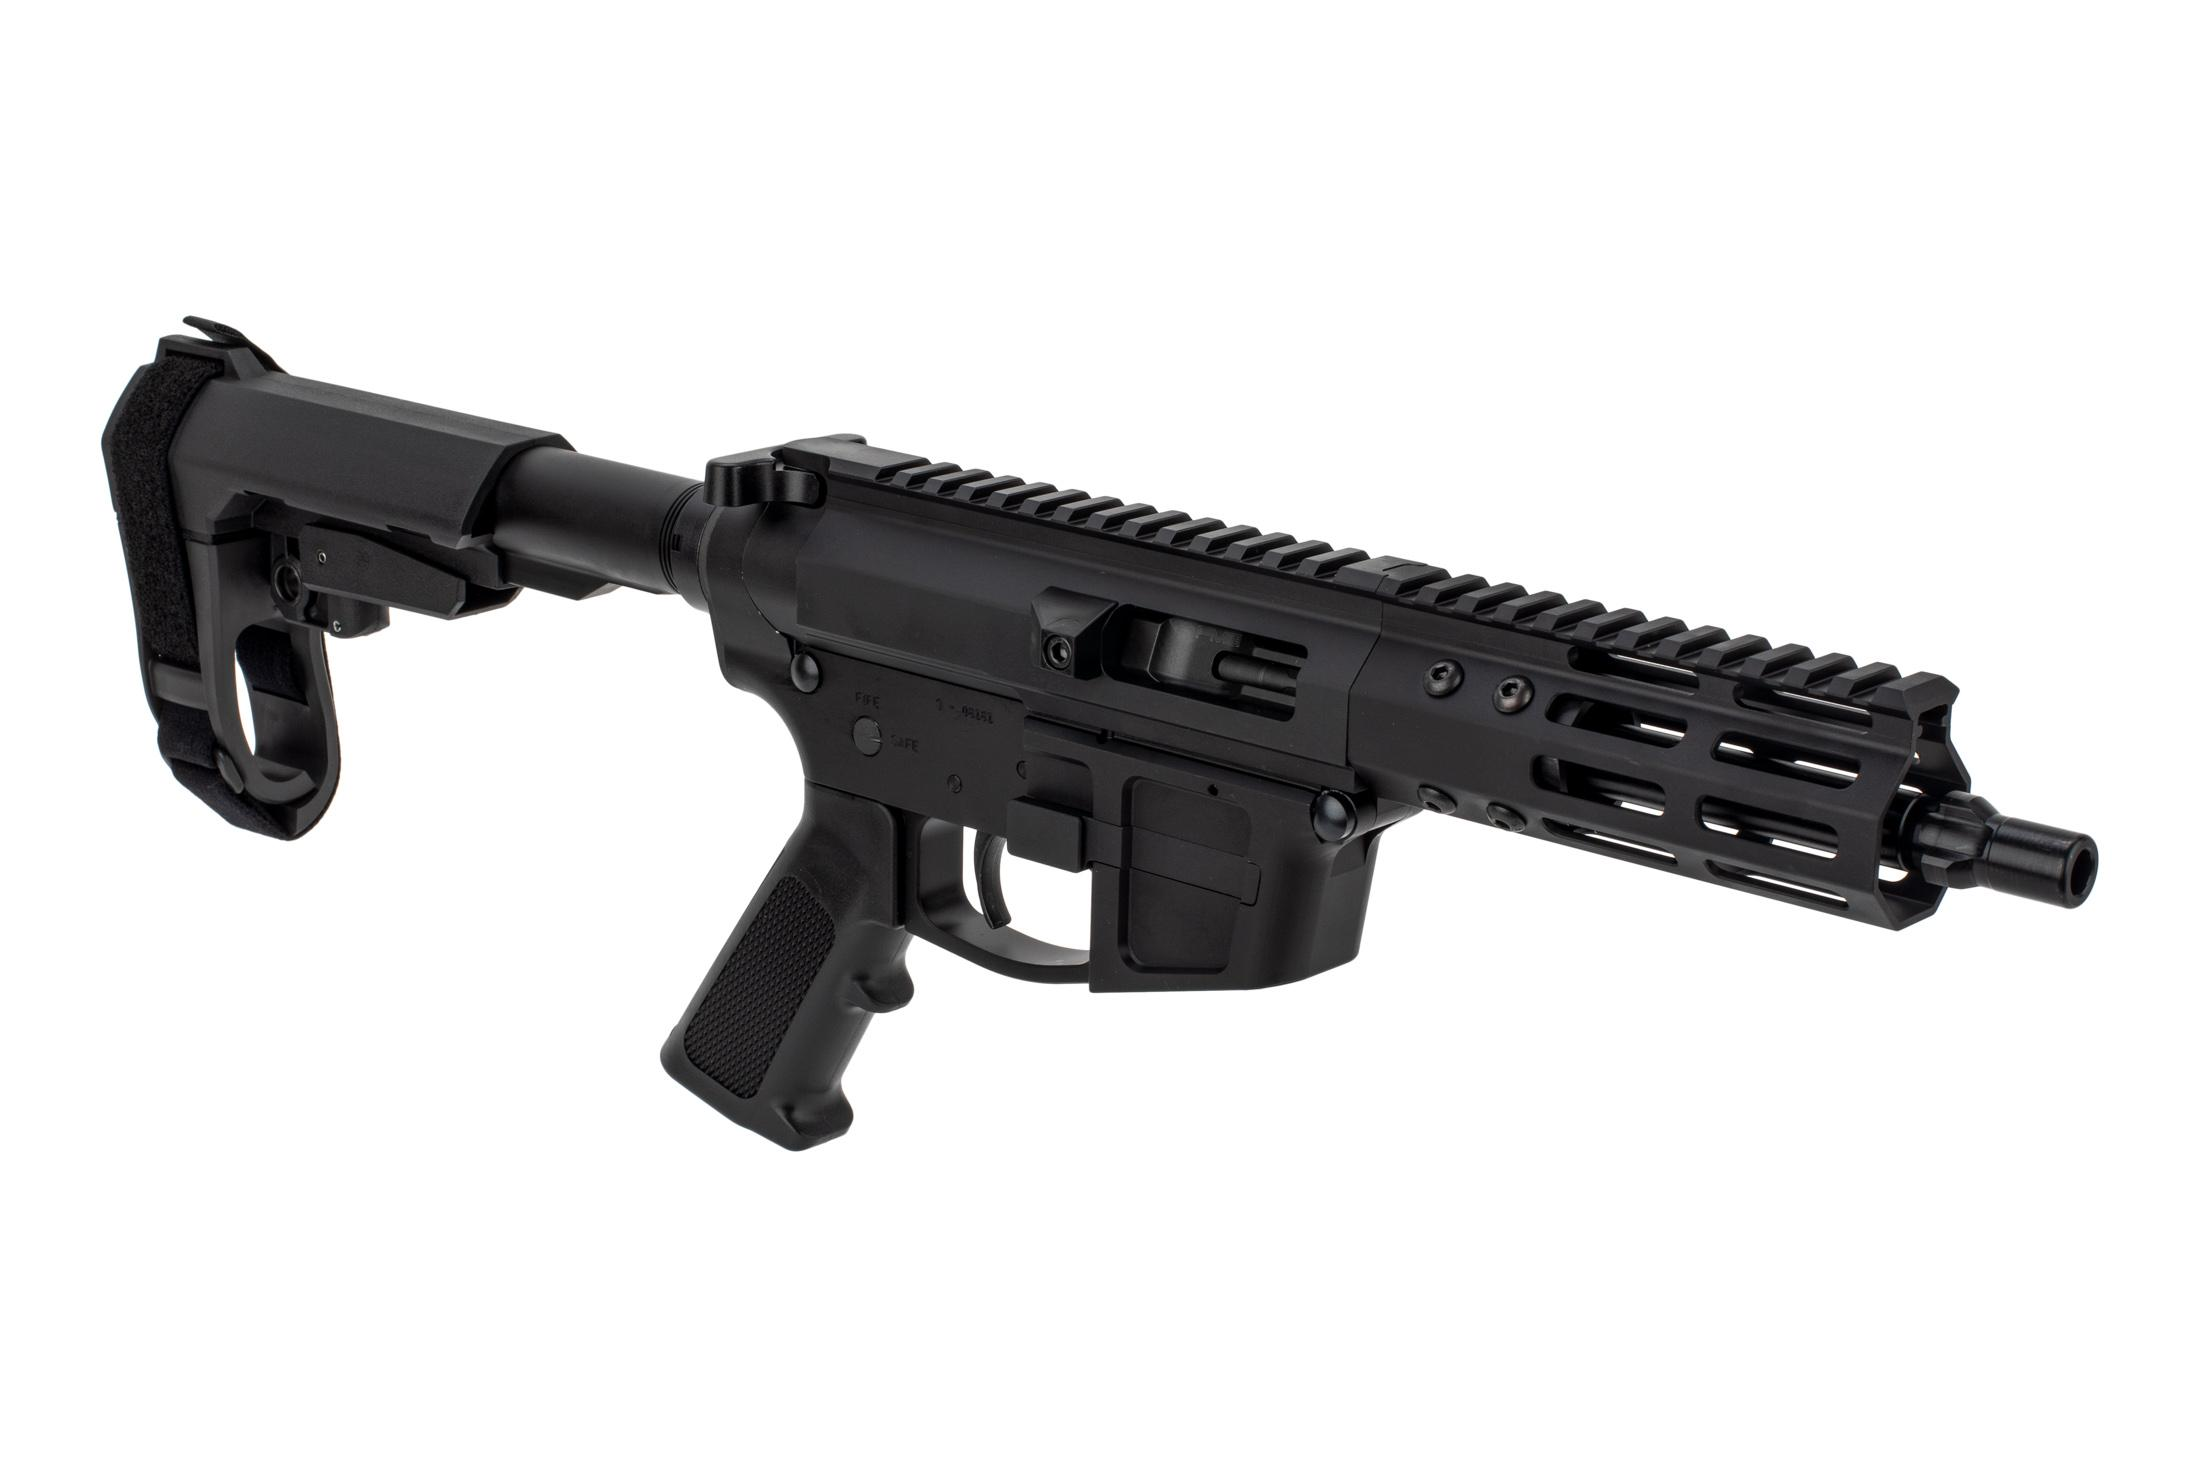 Foxtrot Mike Products 9mm Tri Lug SBA3 PA Exclusive Pistol - 7